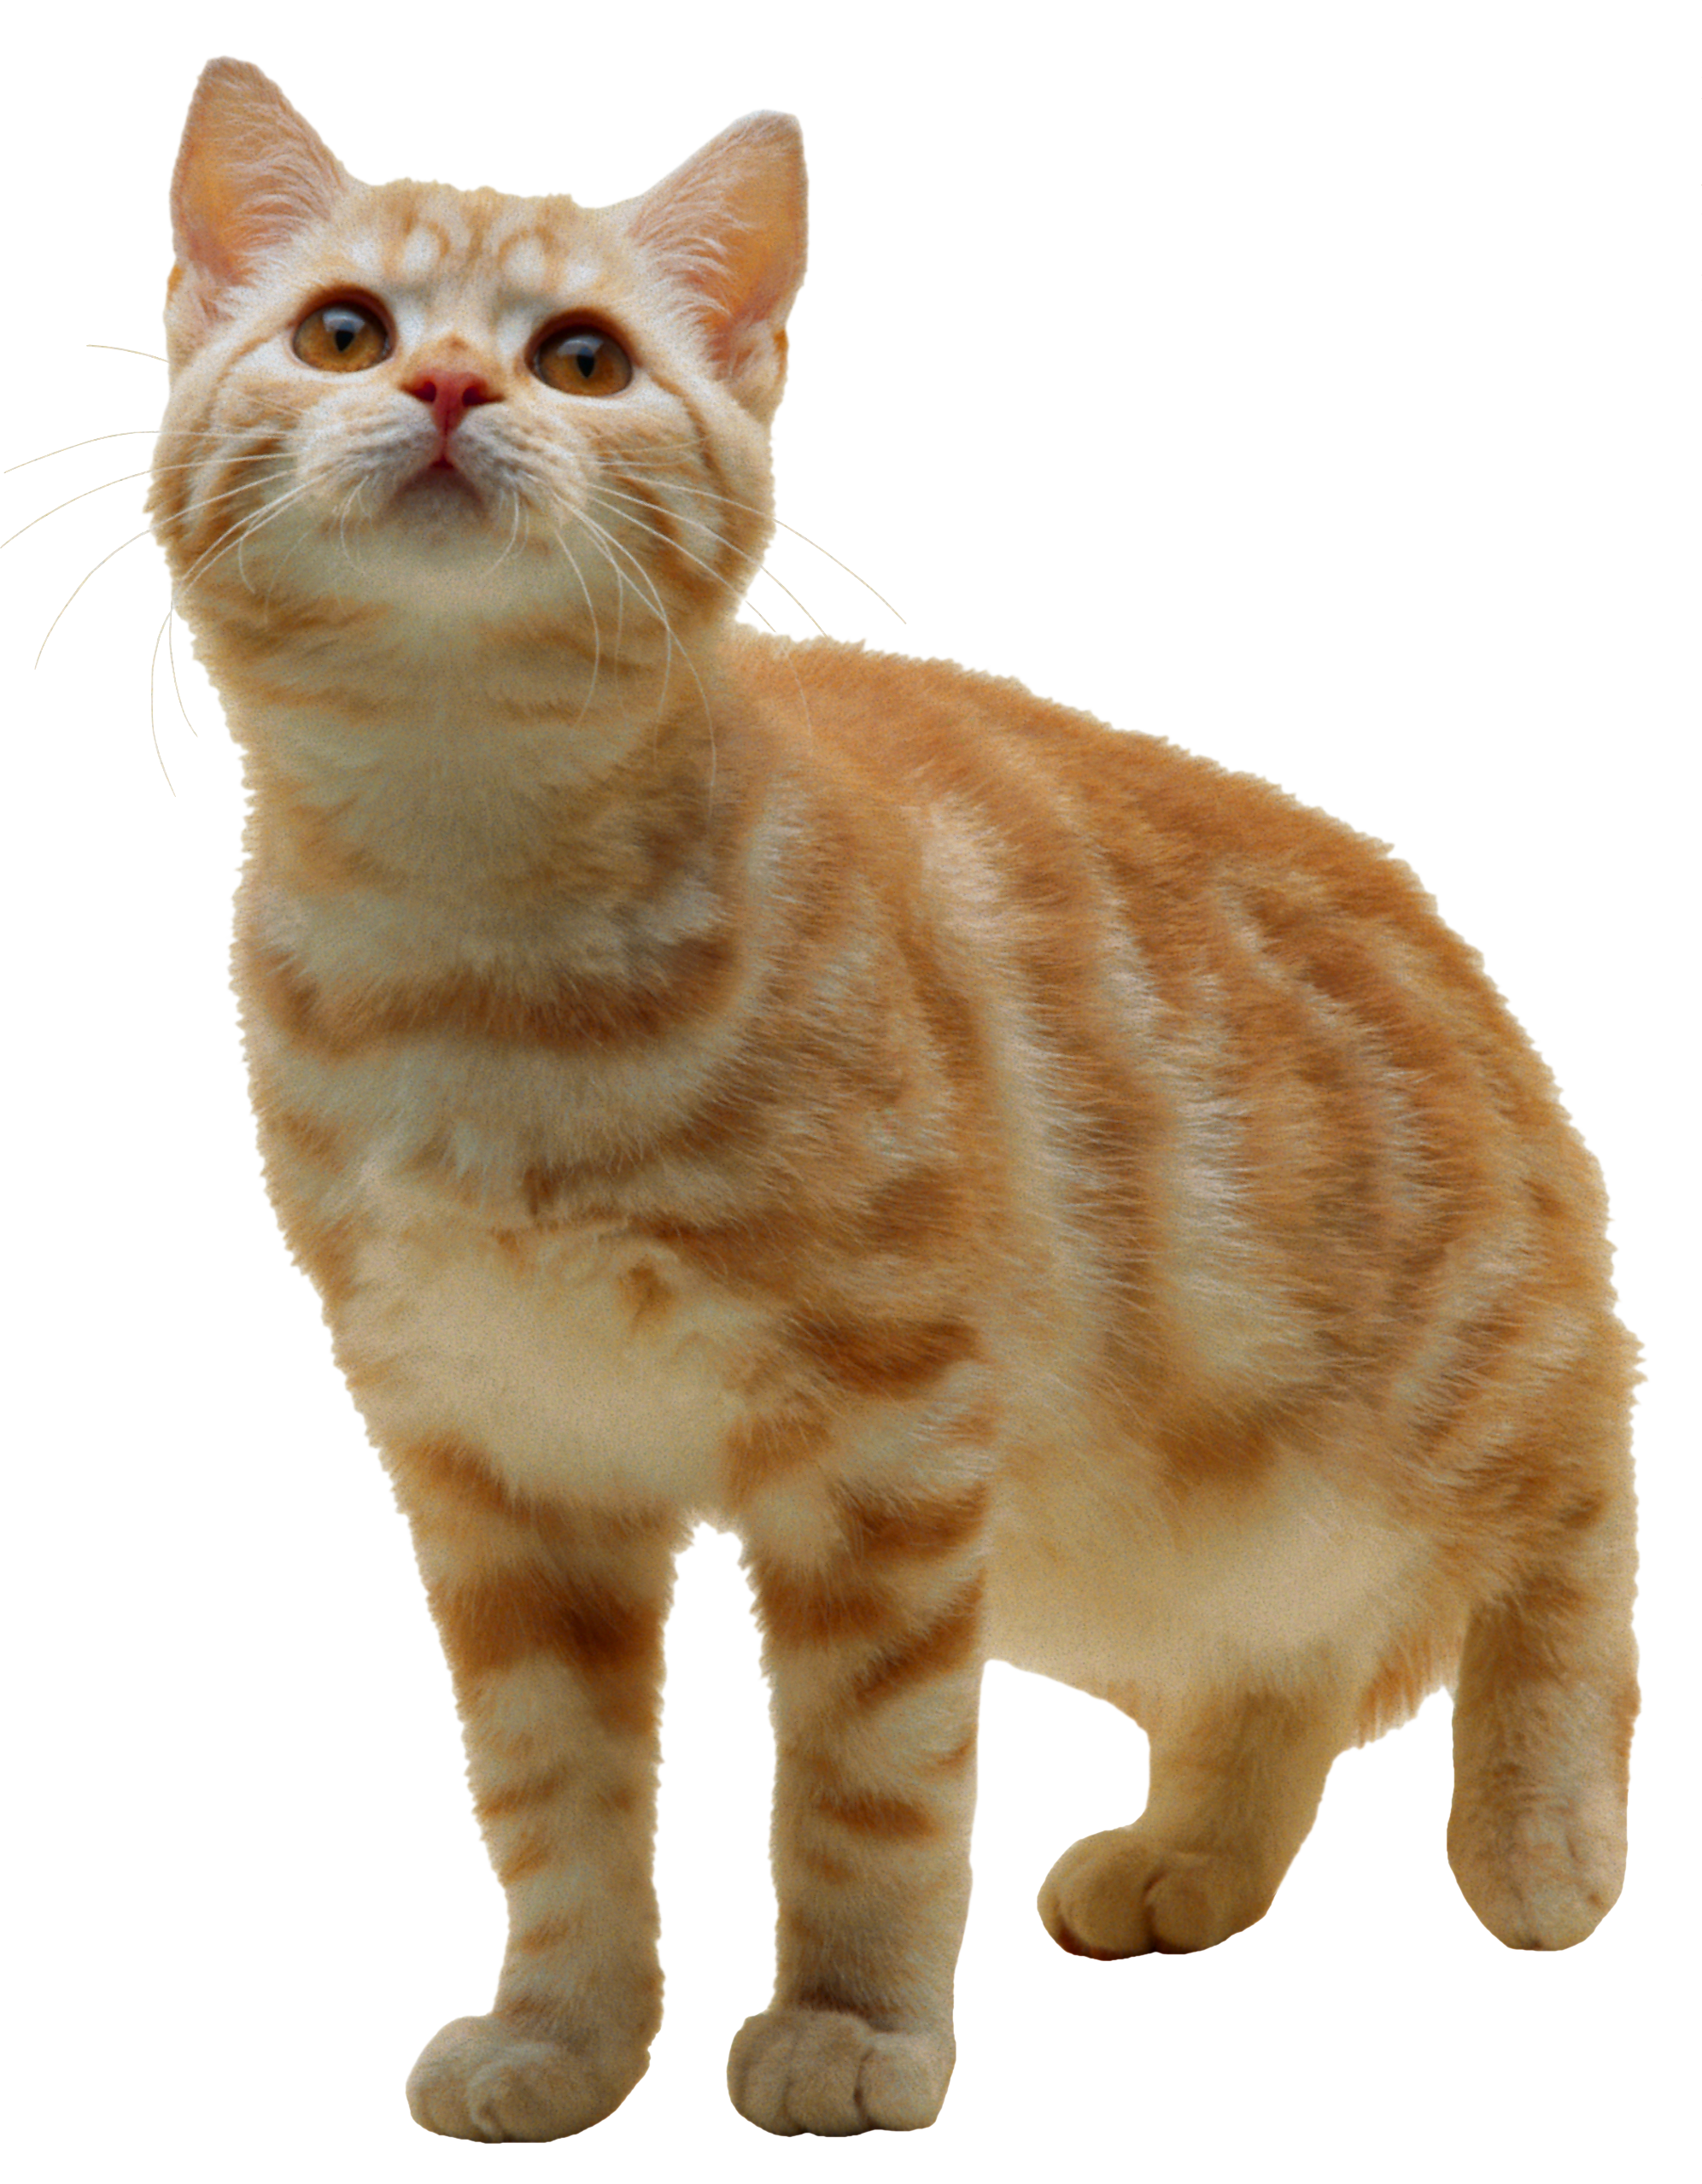 cat png image, free download picture, kitten - Cat PNG